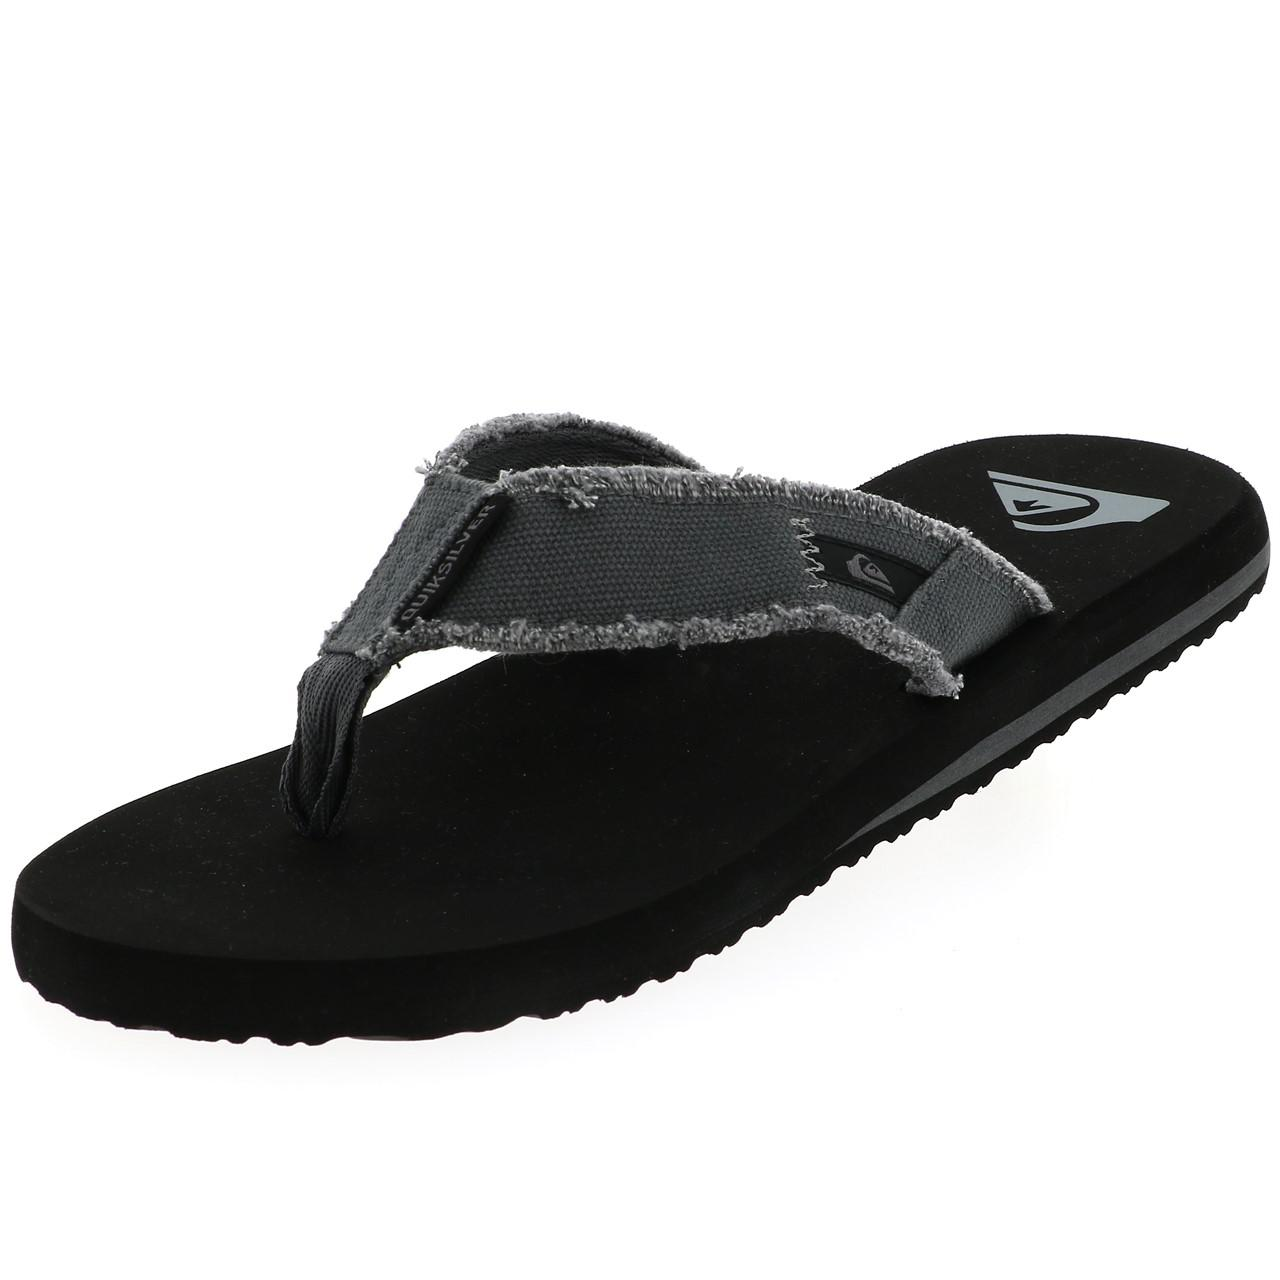 Flip-Flops-Tap-Dance-Shoes-Quiksilver-Monkey-Abyss-Groups-Blk-Flop-Grey-17978 thumbnail 1